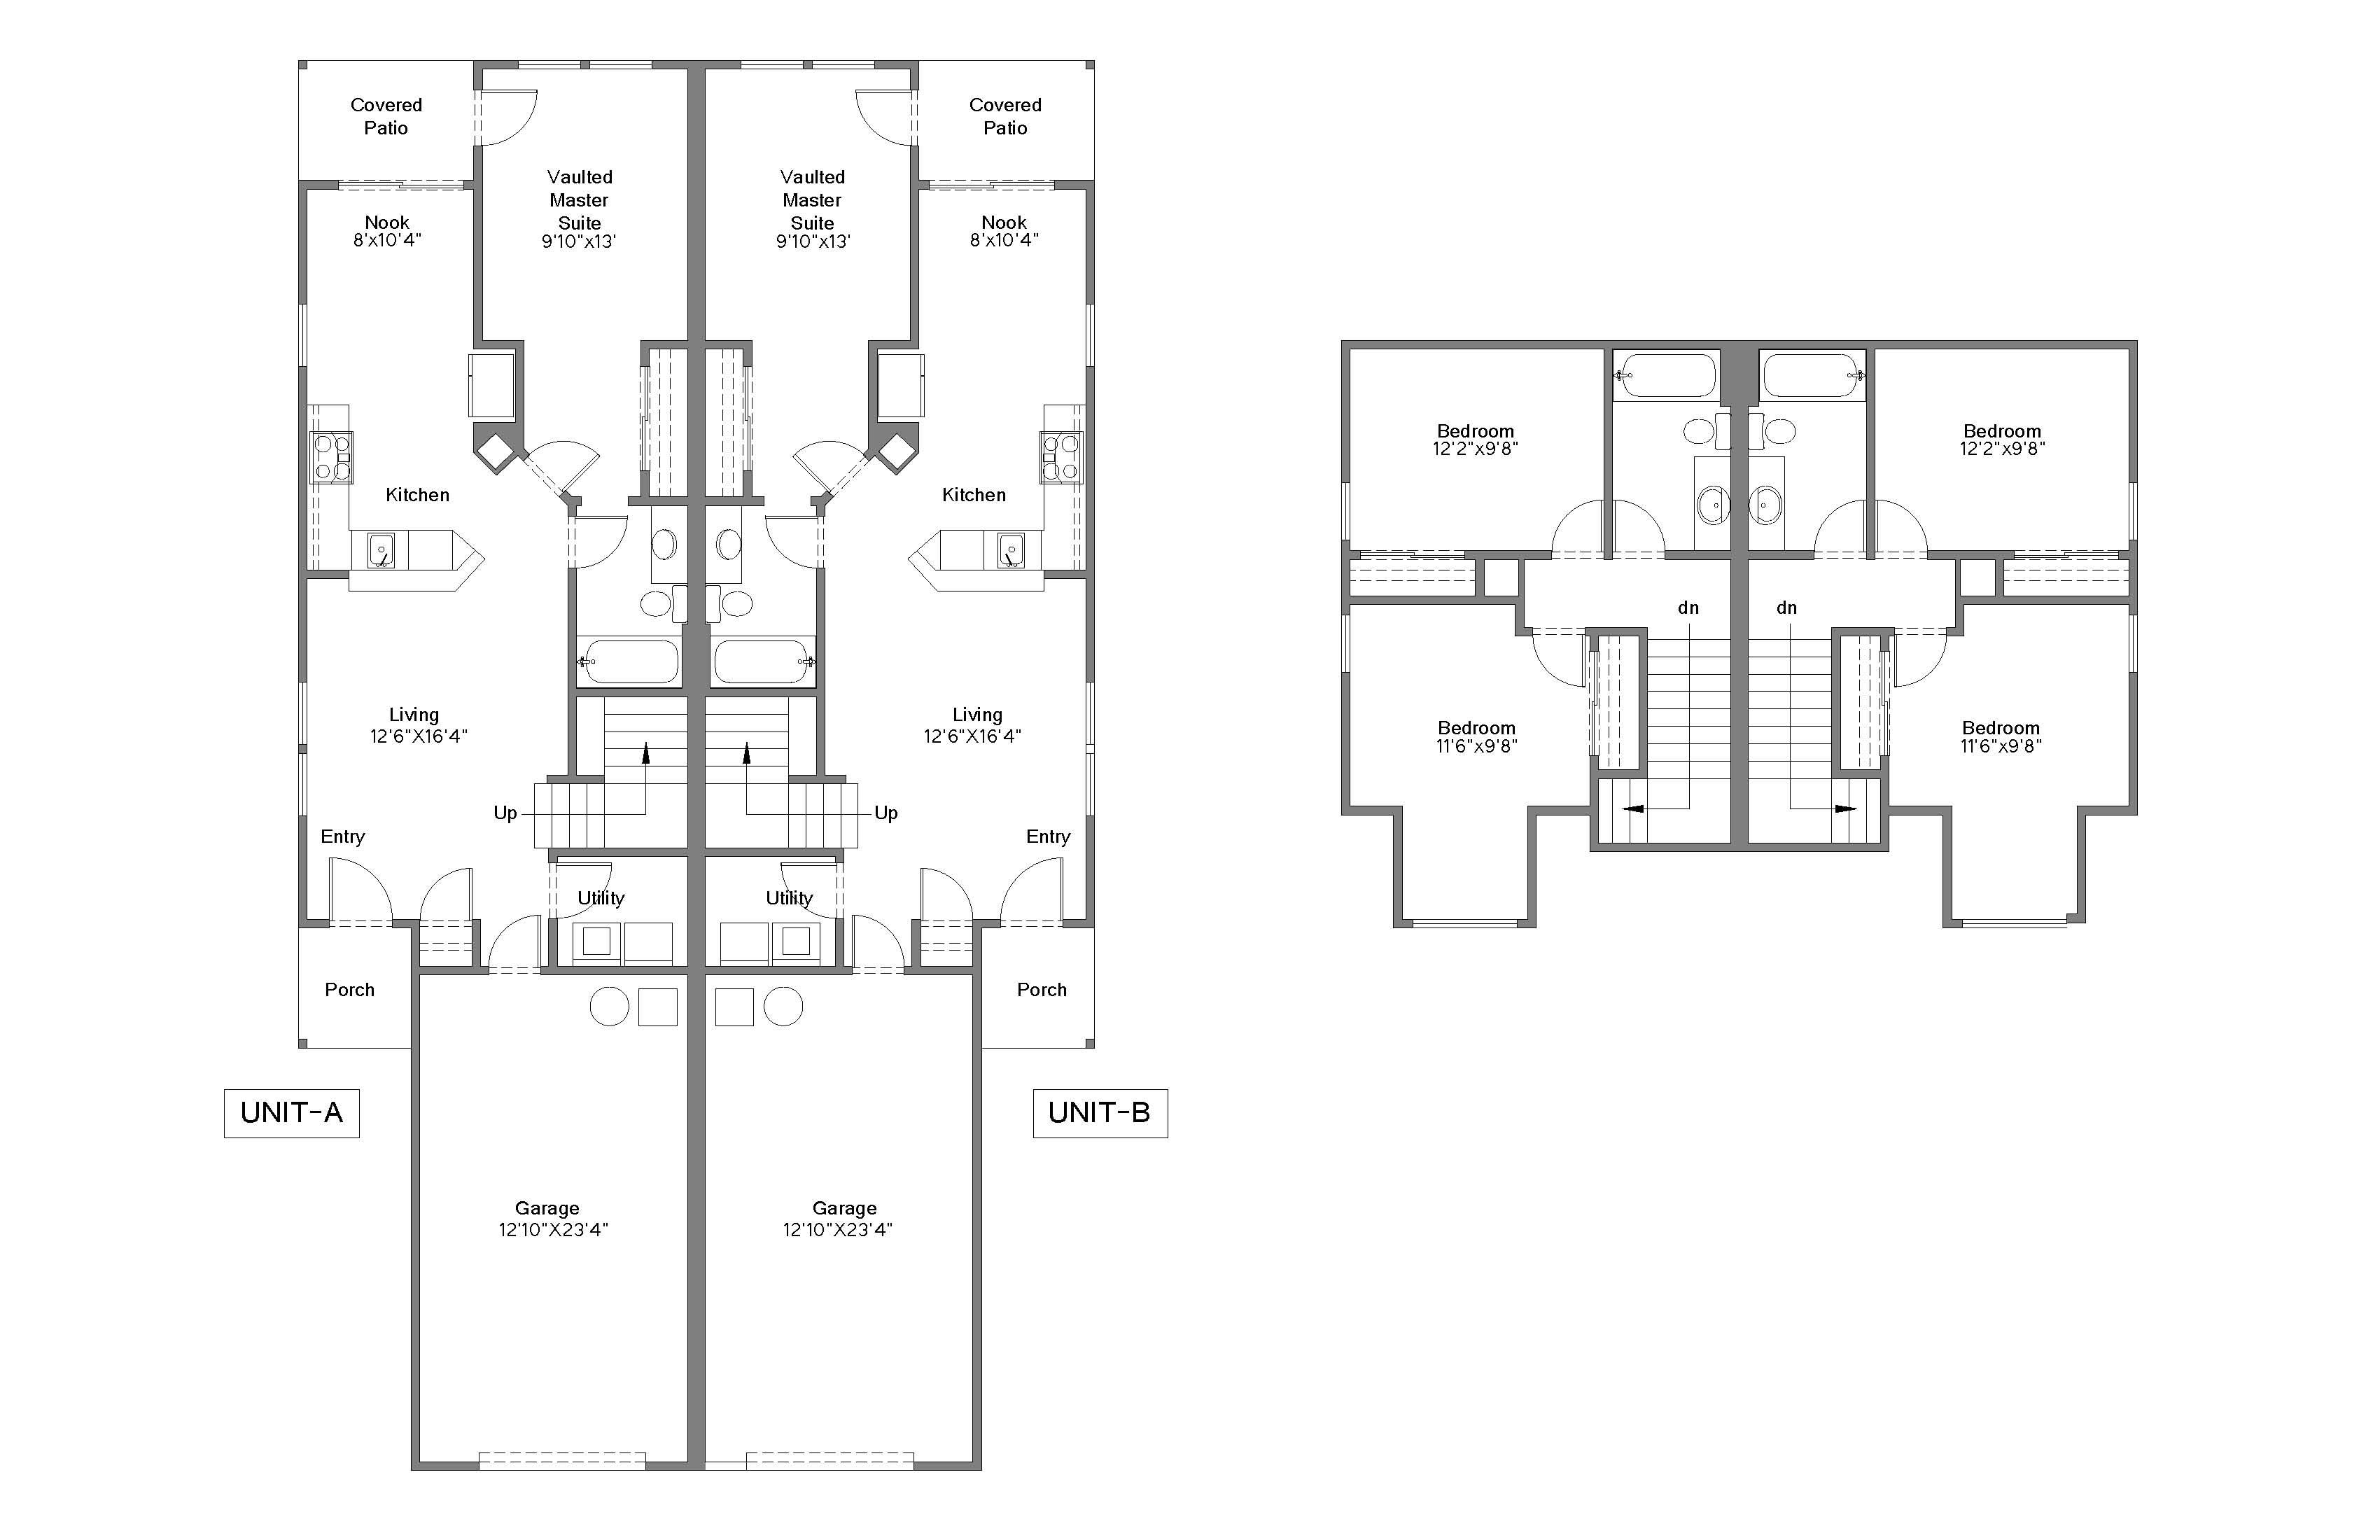 Architectural Floor Plan, Floor Plan With Autocad Drawings, Autocad  Architectural Drawings,